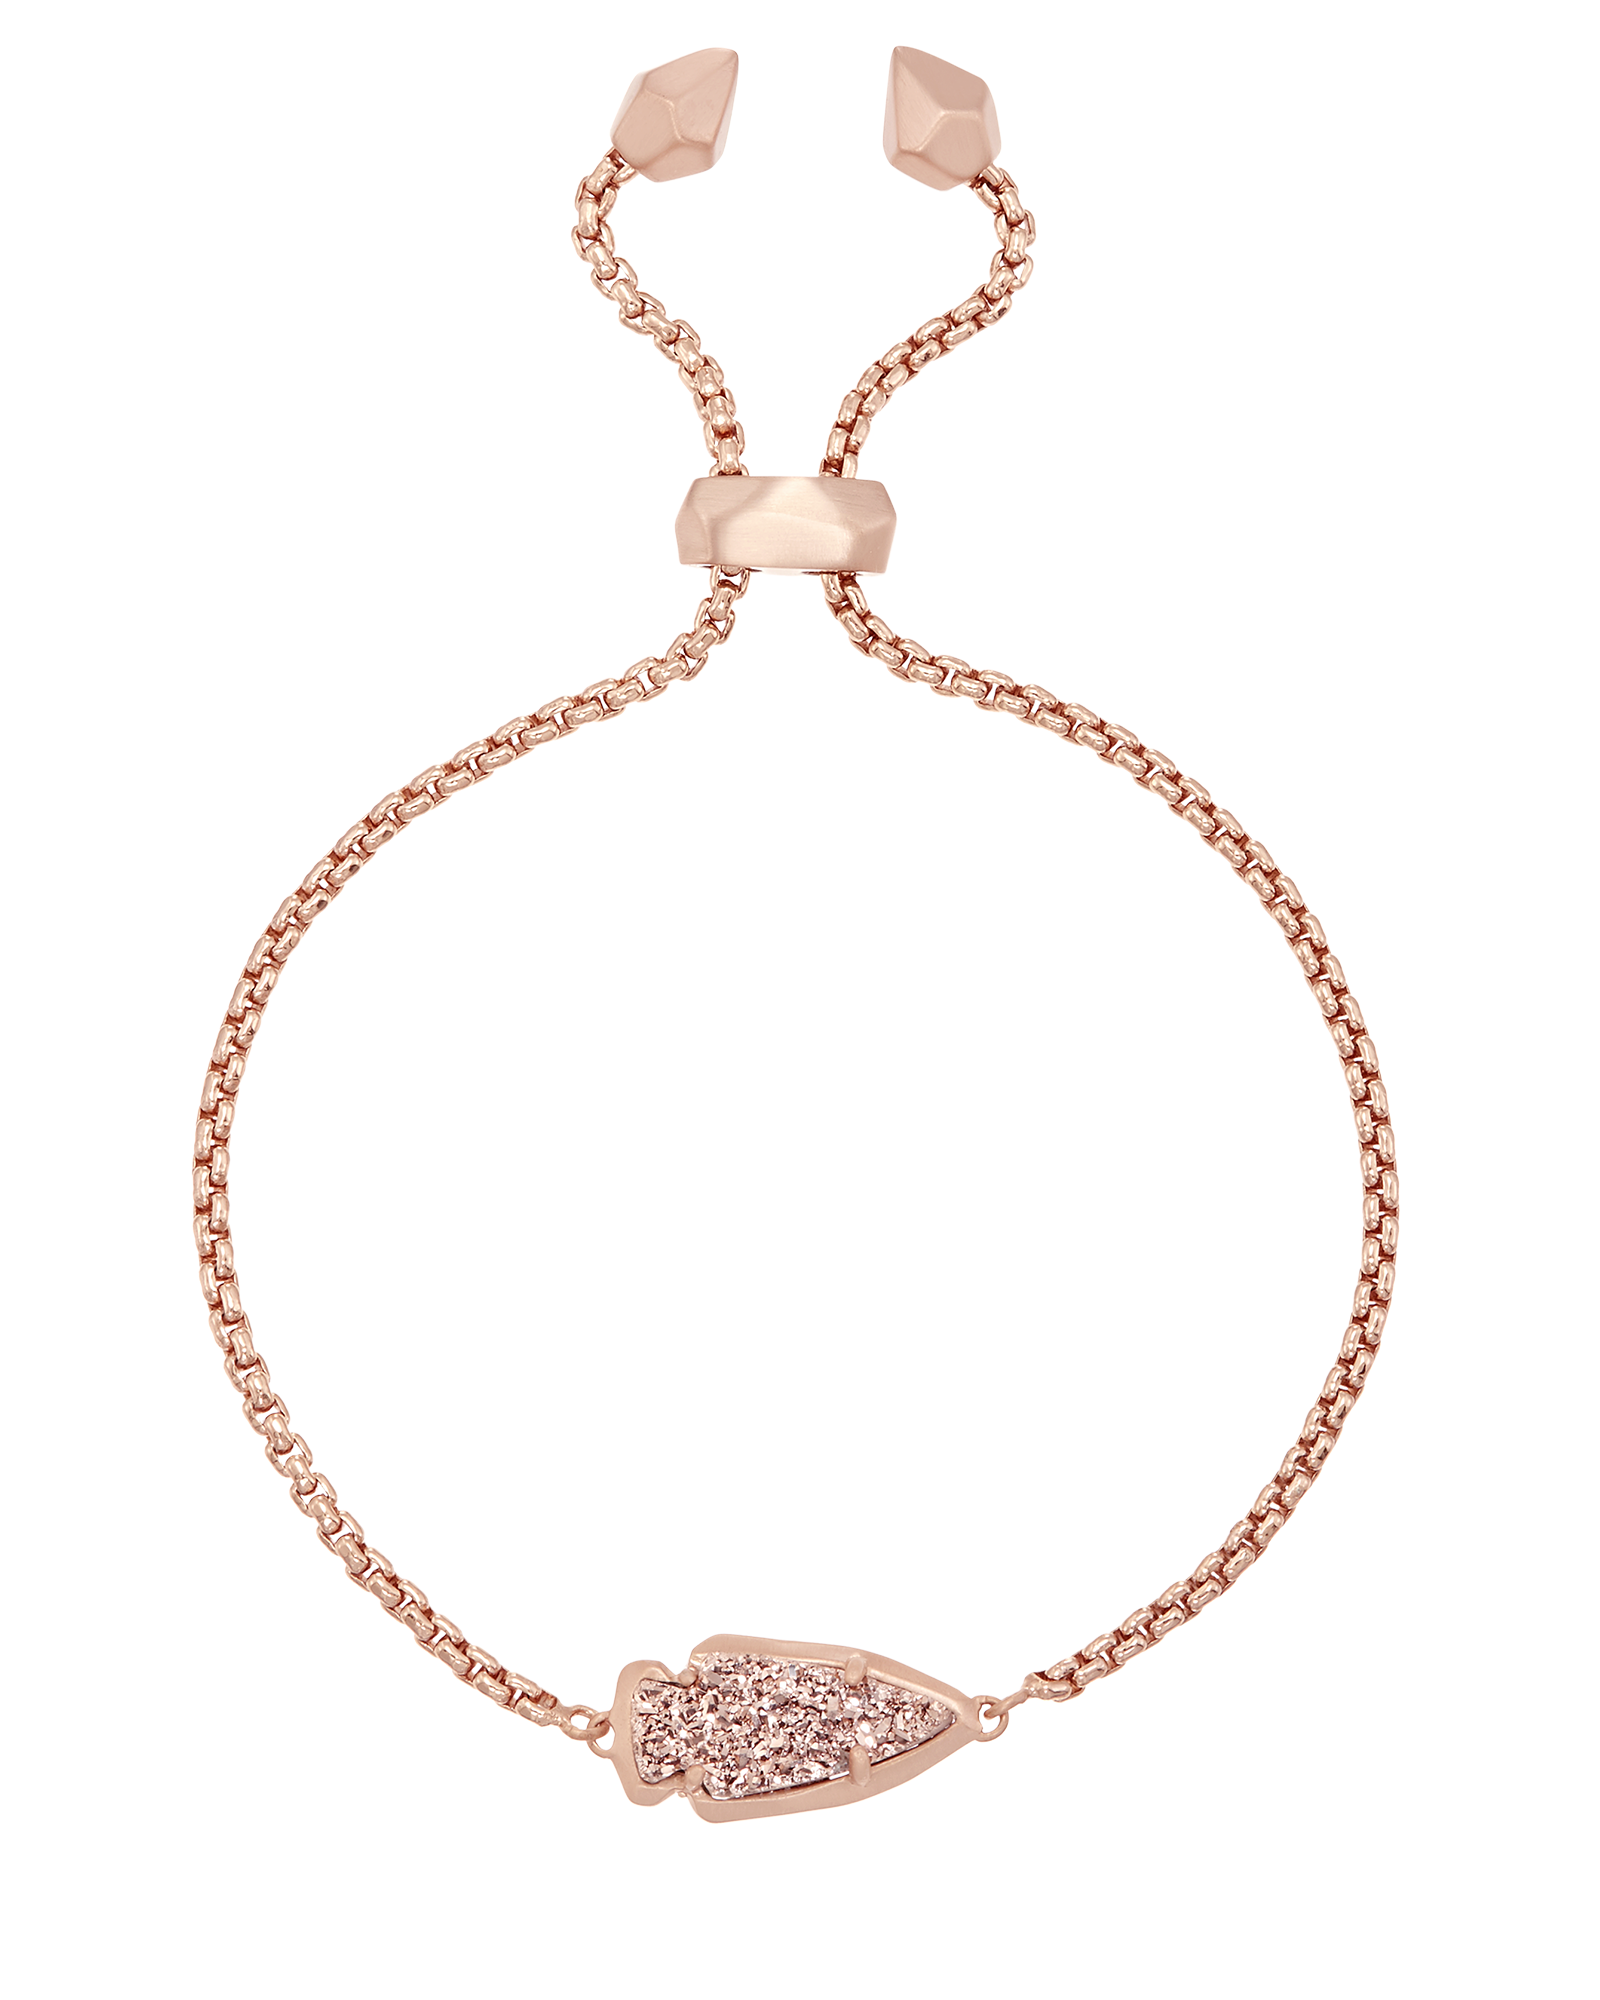 1600x2000 A Simple Arrowhead Silhouette Shines In A Pink, Rose Gold Drusy